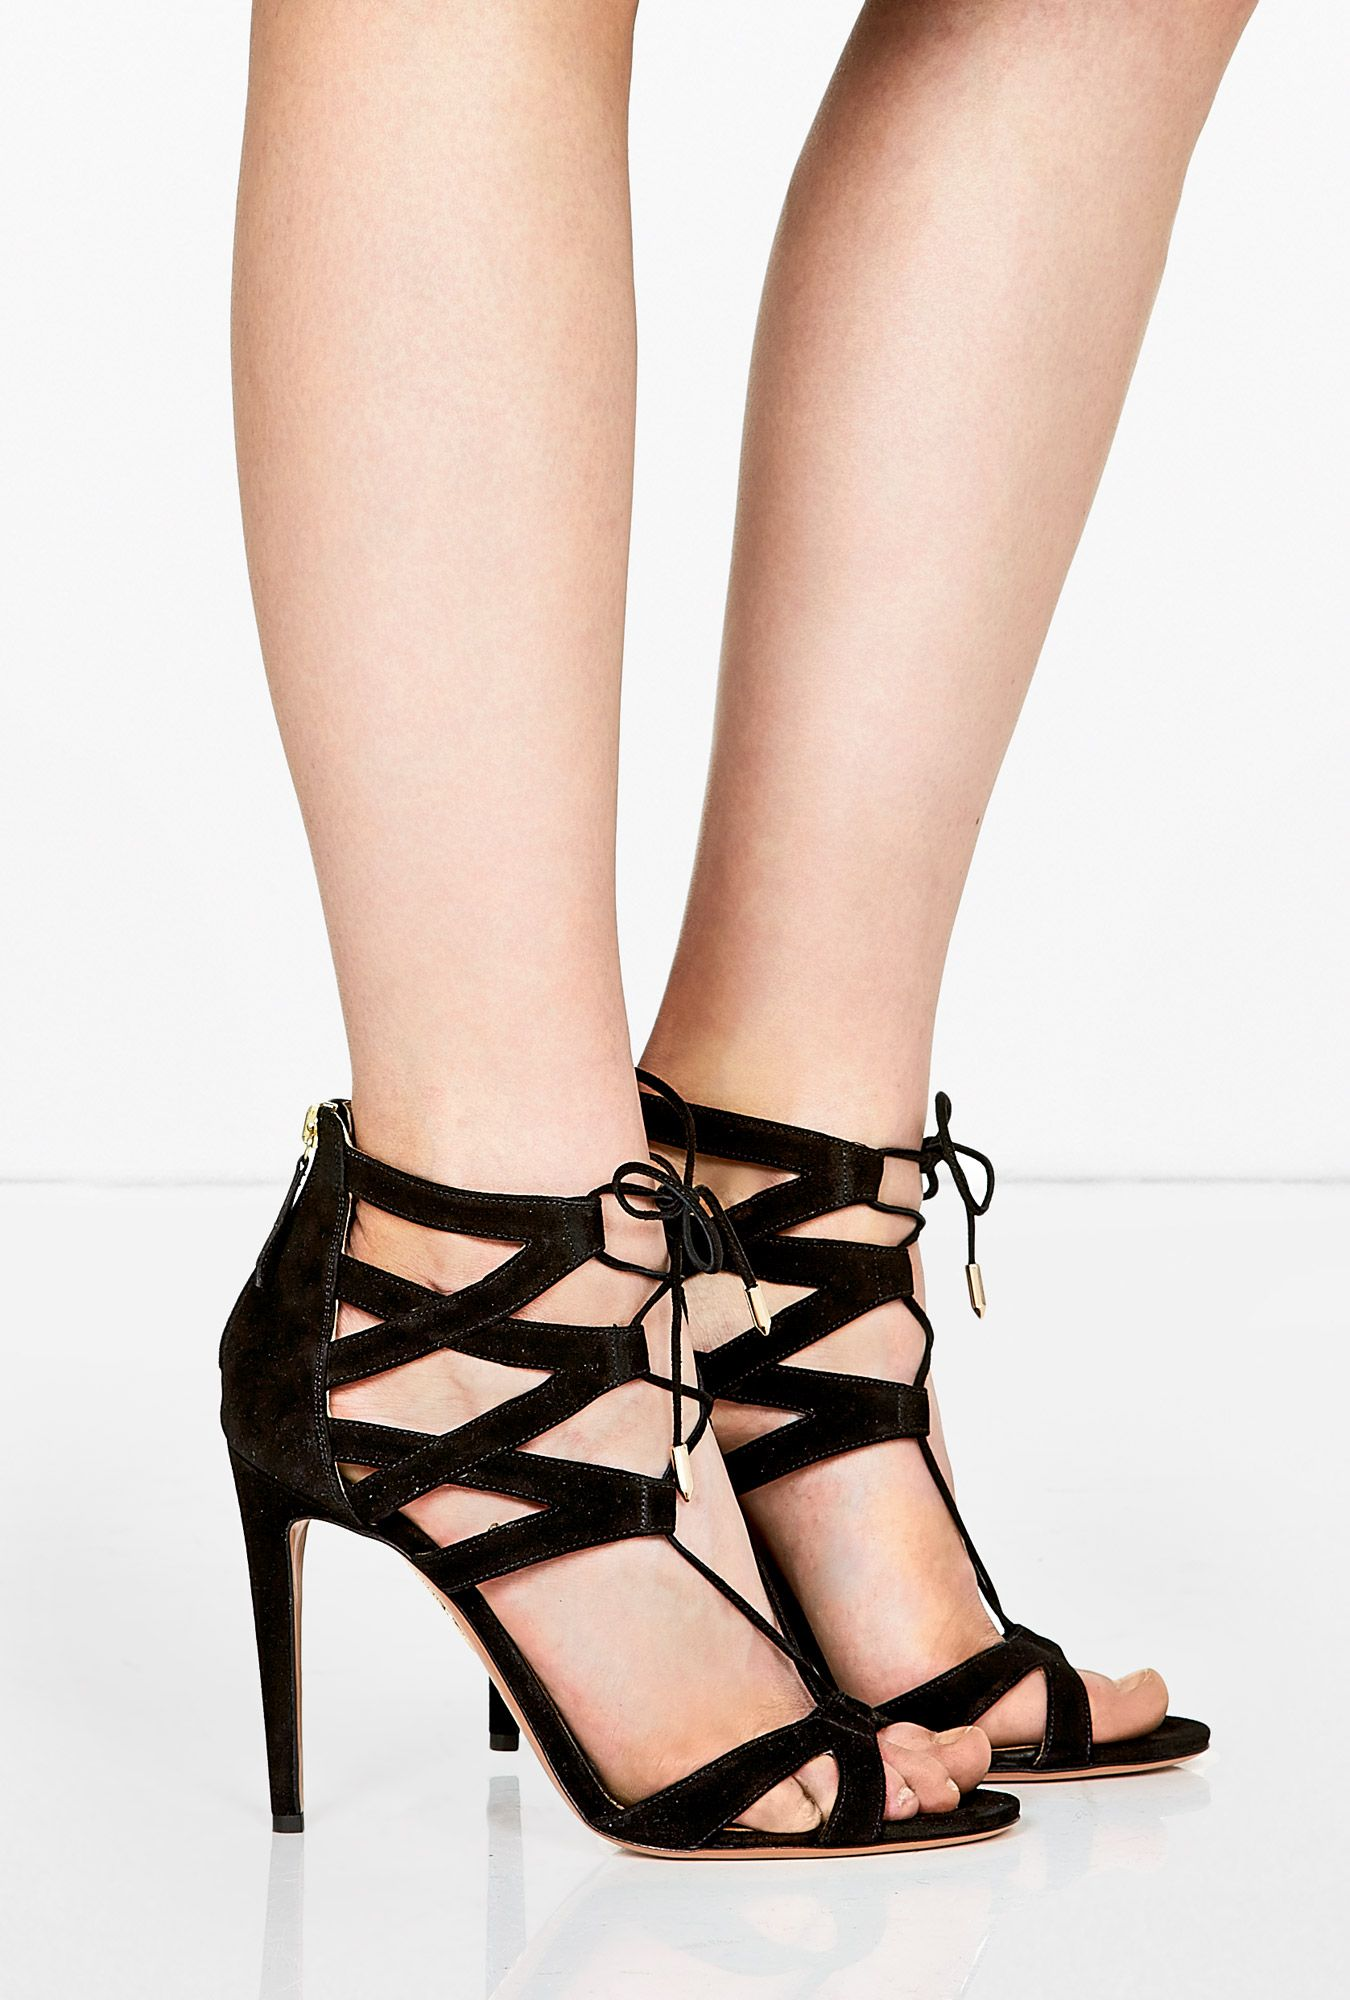 best wholesale get to buy for sale Aquazzura Suede Cutout Lace-Up Sandals clearance looking for discount codes really cheap official site online 2FgtN69gr